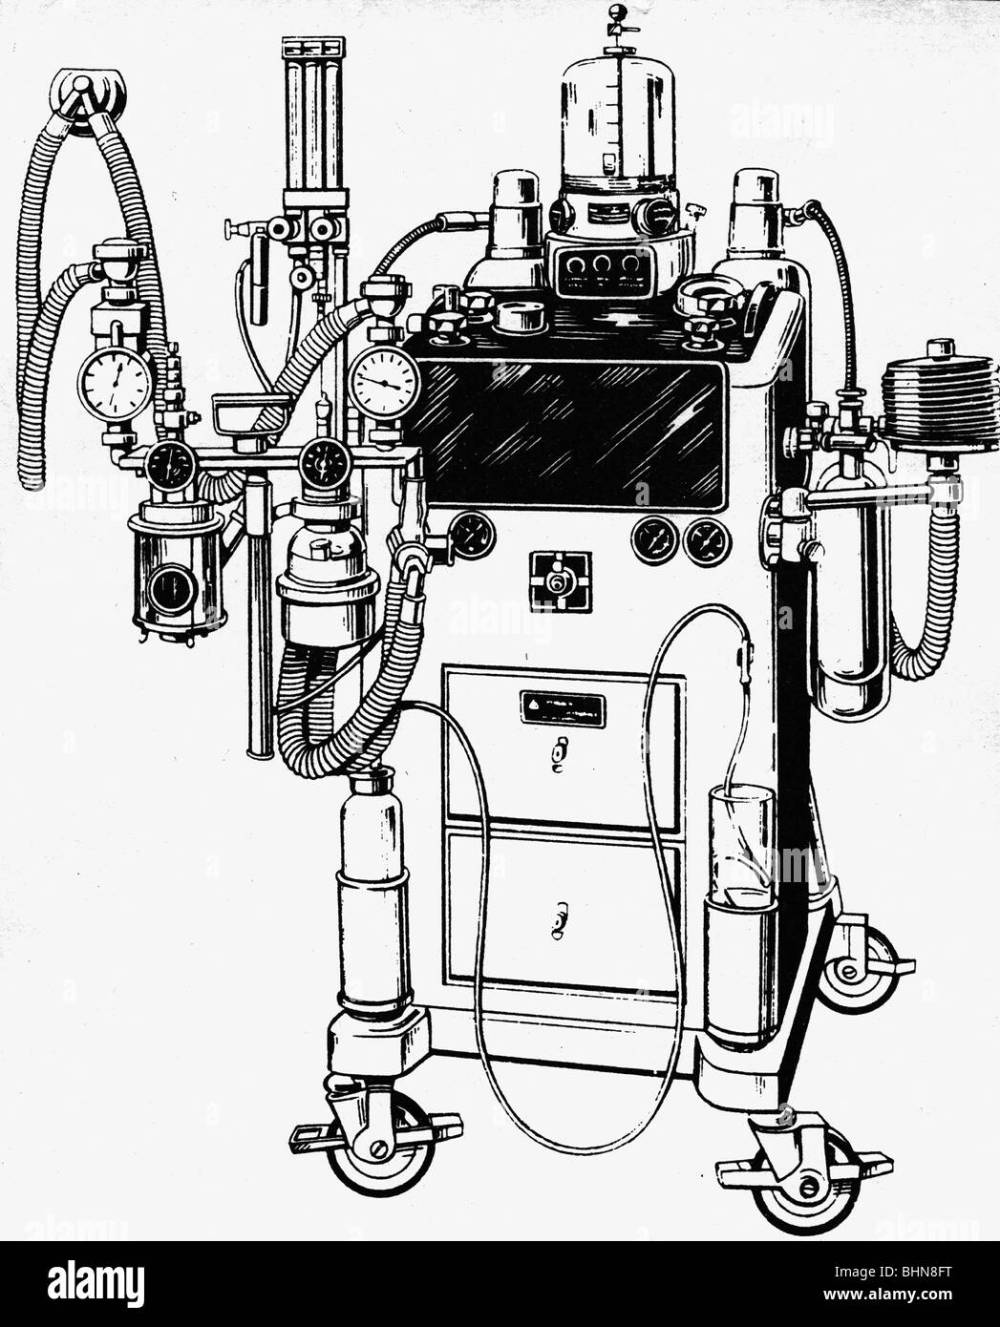 medium resolution of medicine narcosis anaesthetic machine by draeger one of the first machines for anaesthesia by inhalation narcotics additional rights clearances na